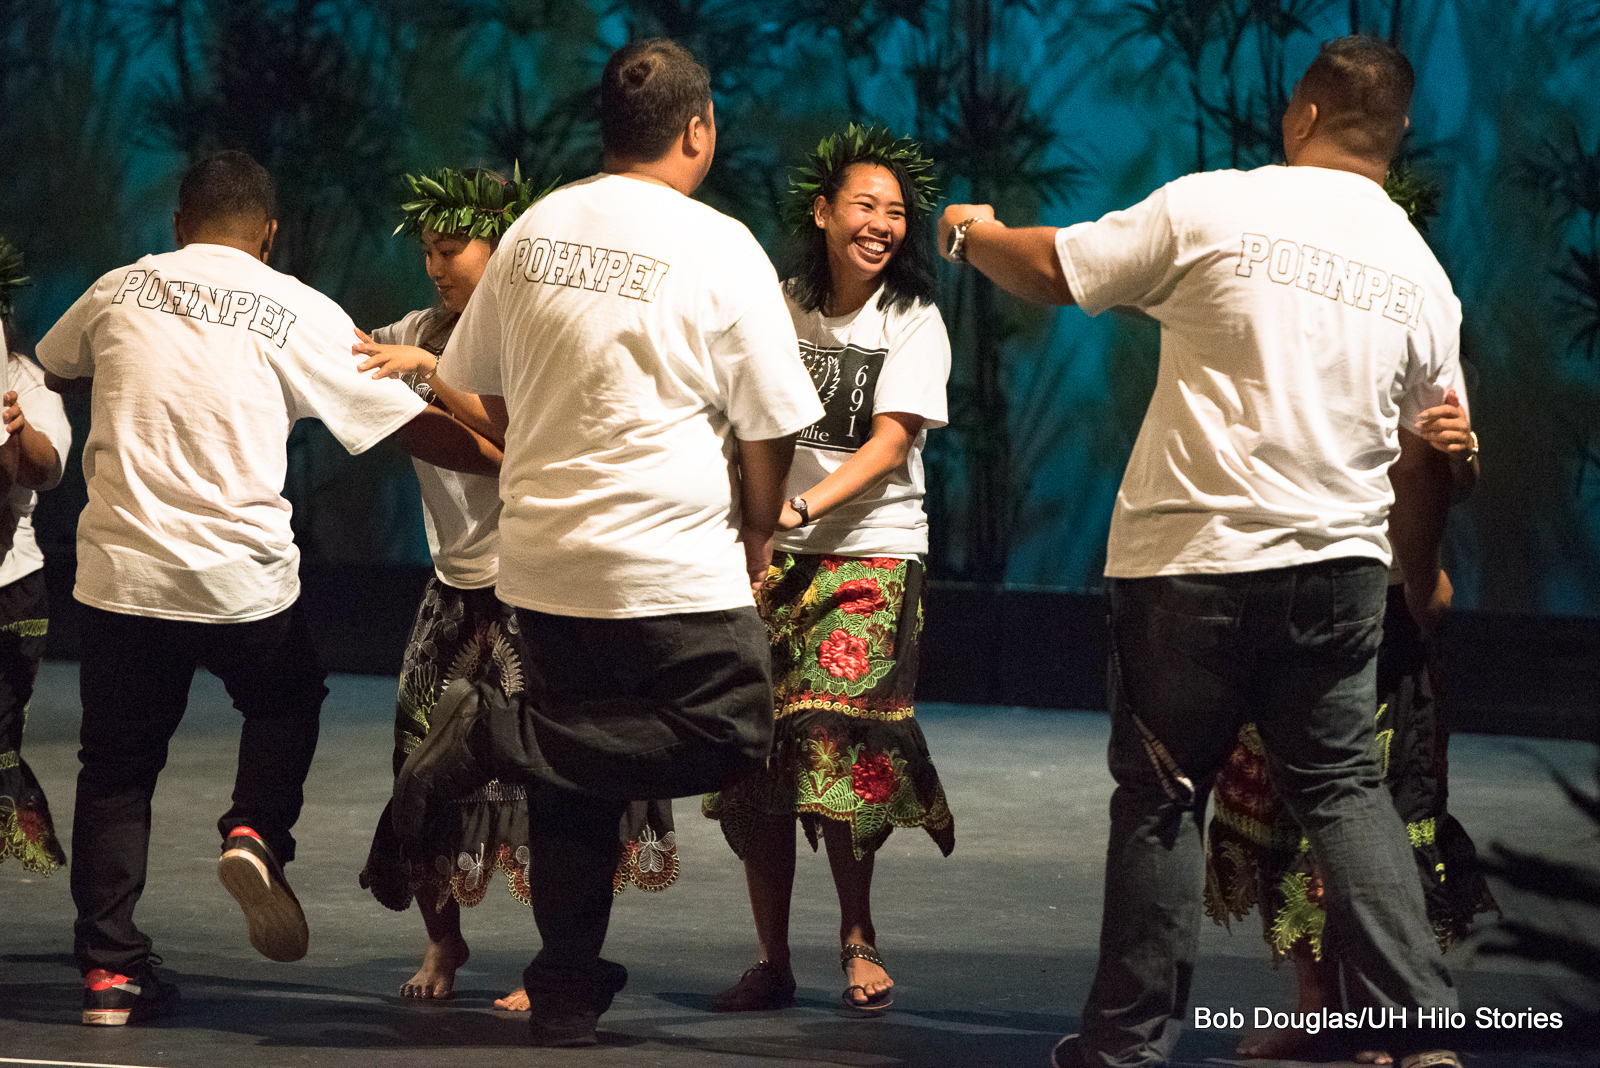 Dancers in pairs, women with colorful skirts and green leaf headdresses, one woman with big smile.